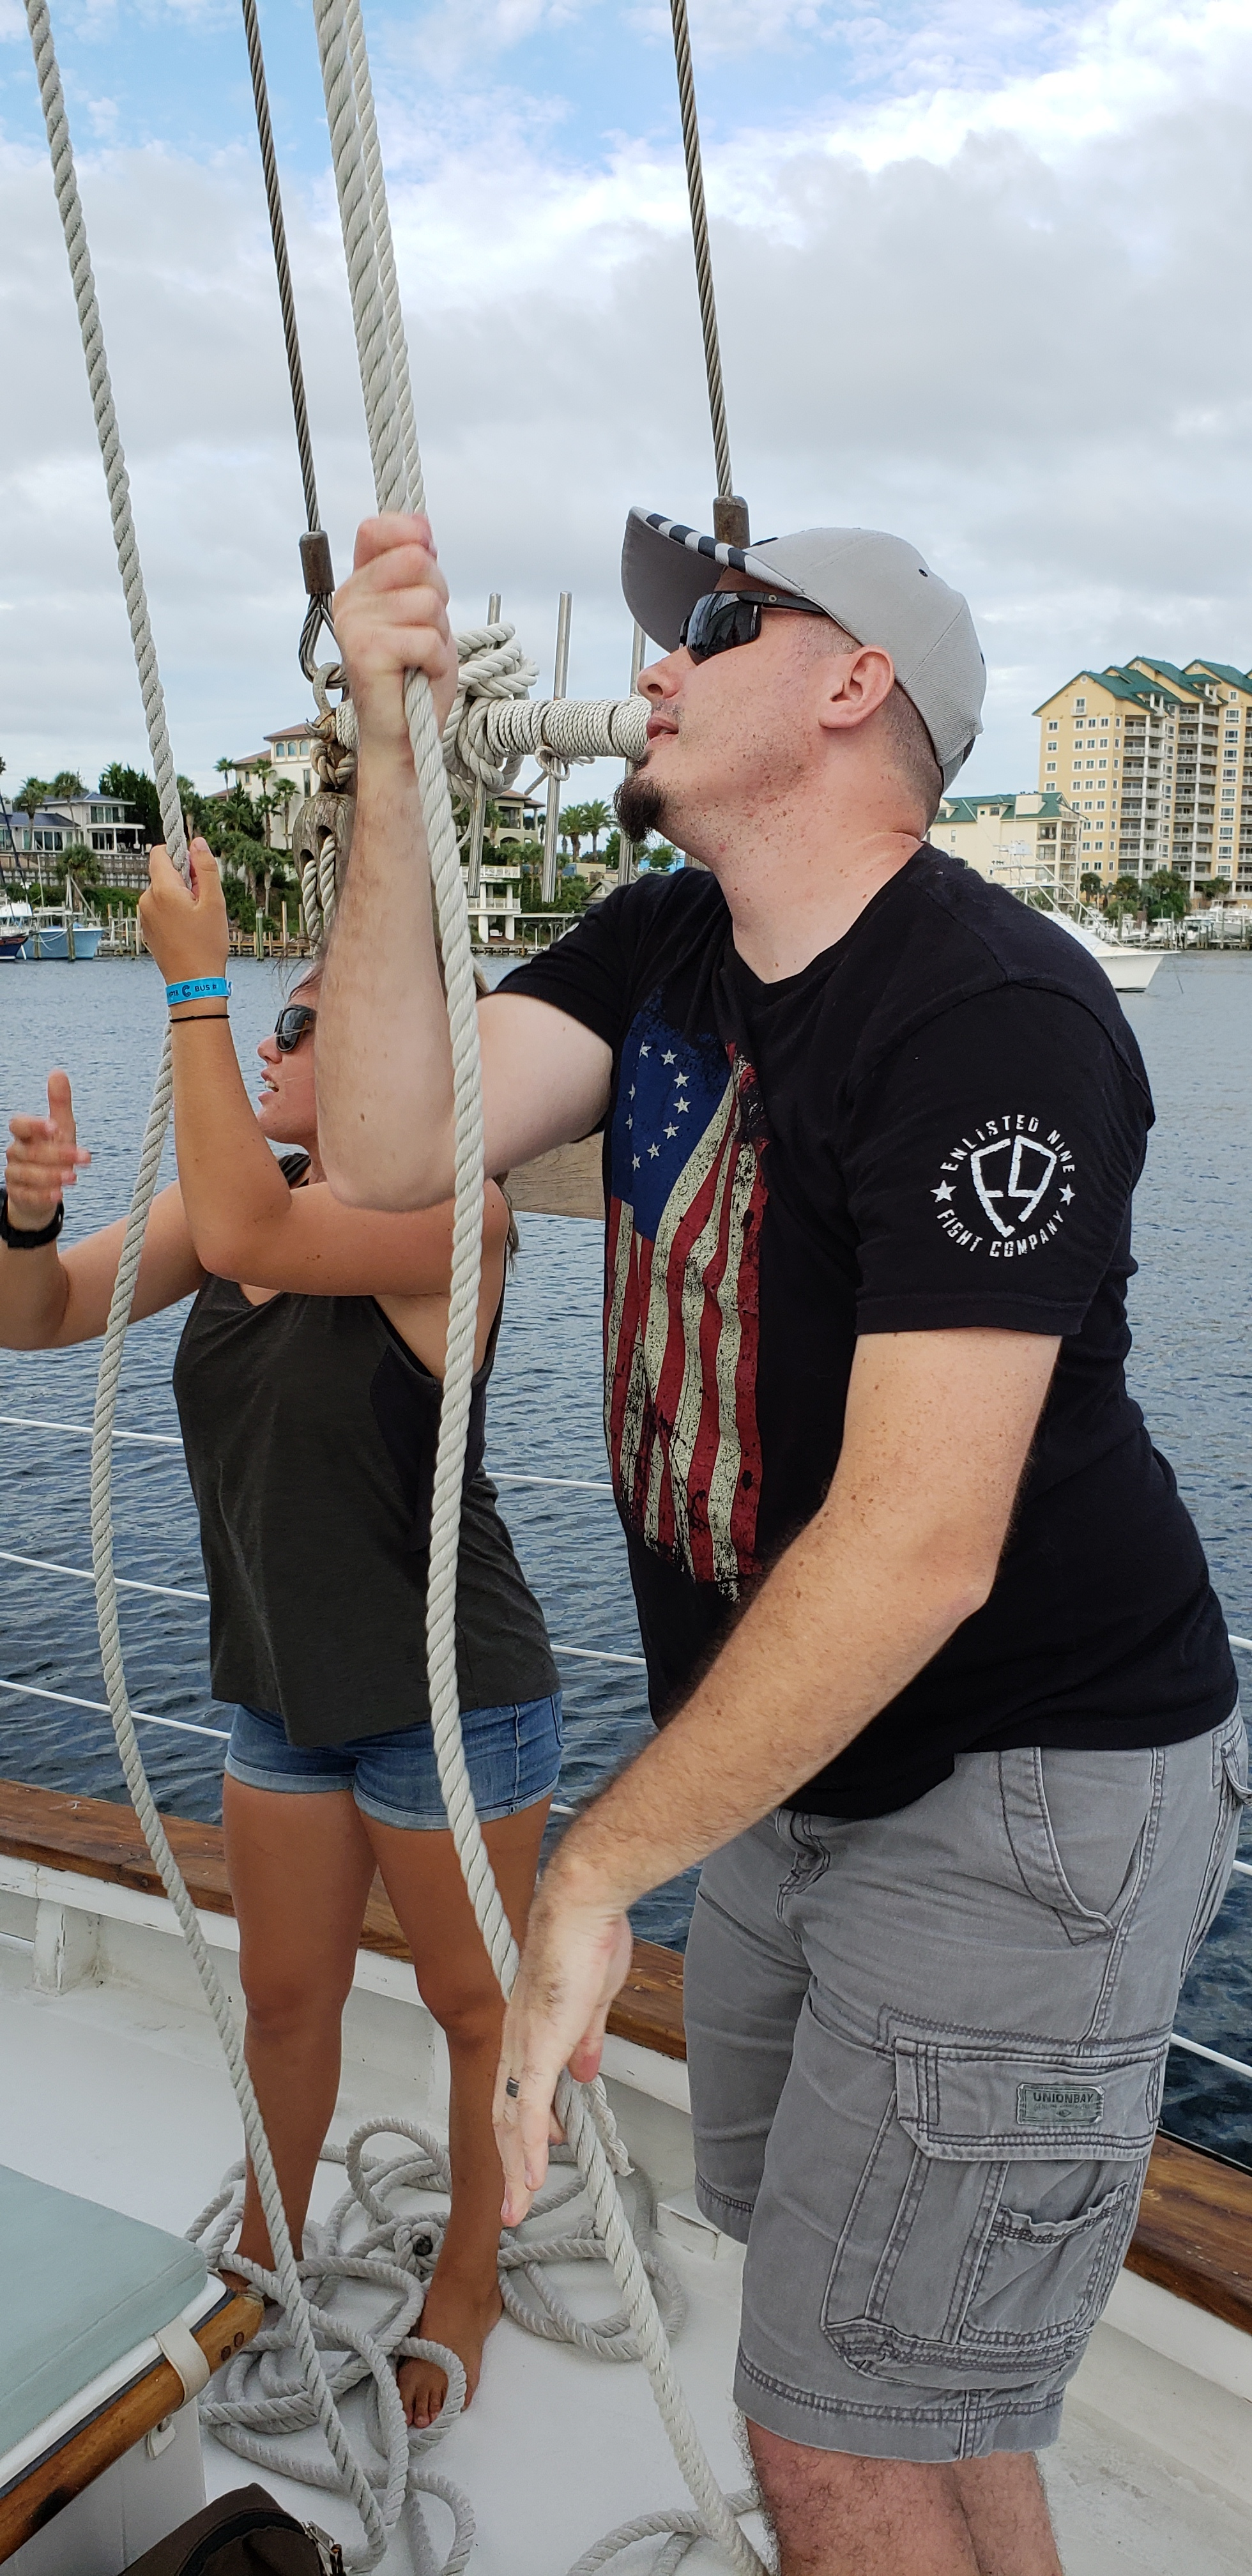 Mikal got to help raise the sails on our sunset sailboat cruise